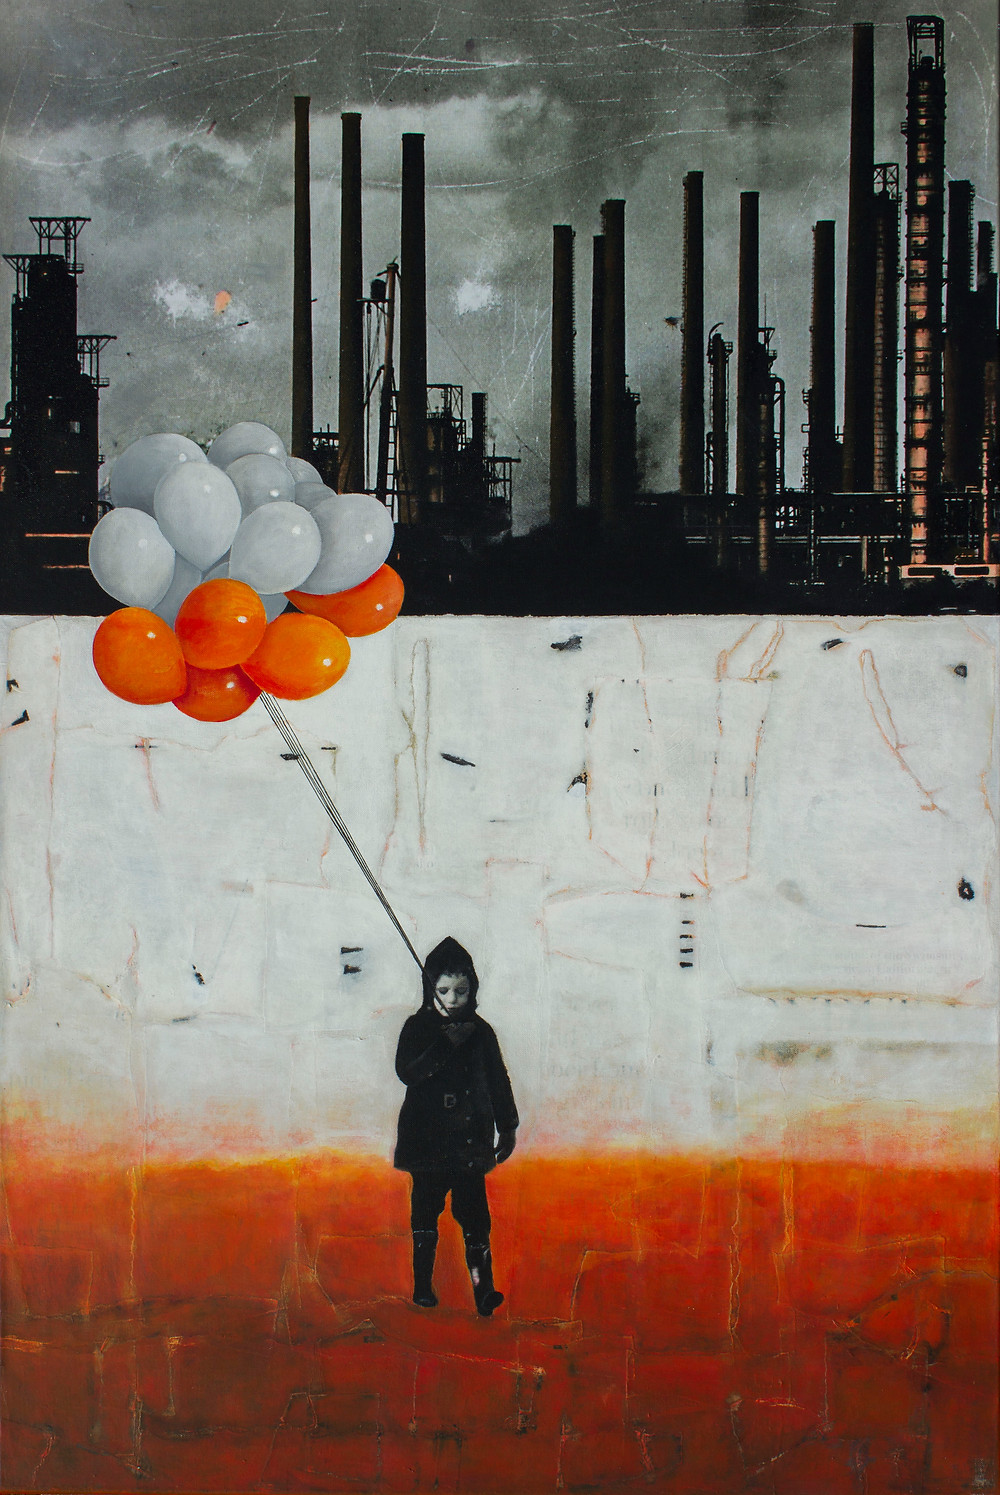 LIFT ME UP III; A boy is walking outside with his balloons, trying to escape the gloomy reality in which he lives. I have printed a photograph, of my original artwork on paper, on canvas. The printed image is layered over with paper and acrylic paint, so there has been created a completely new original artwork.